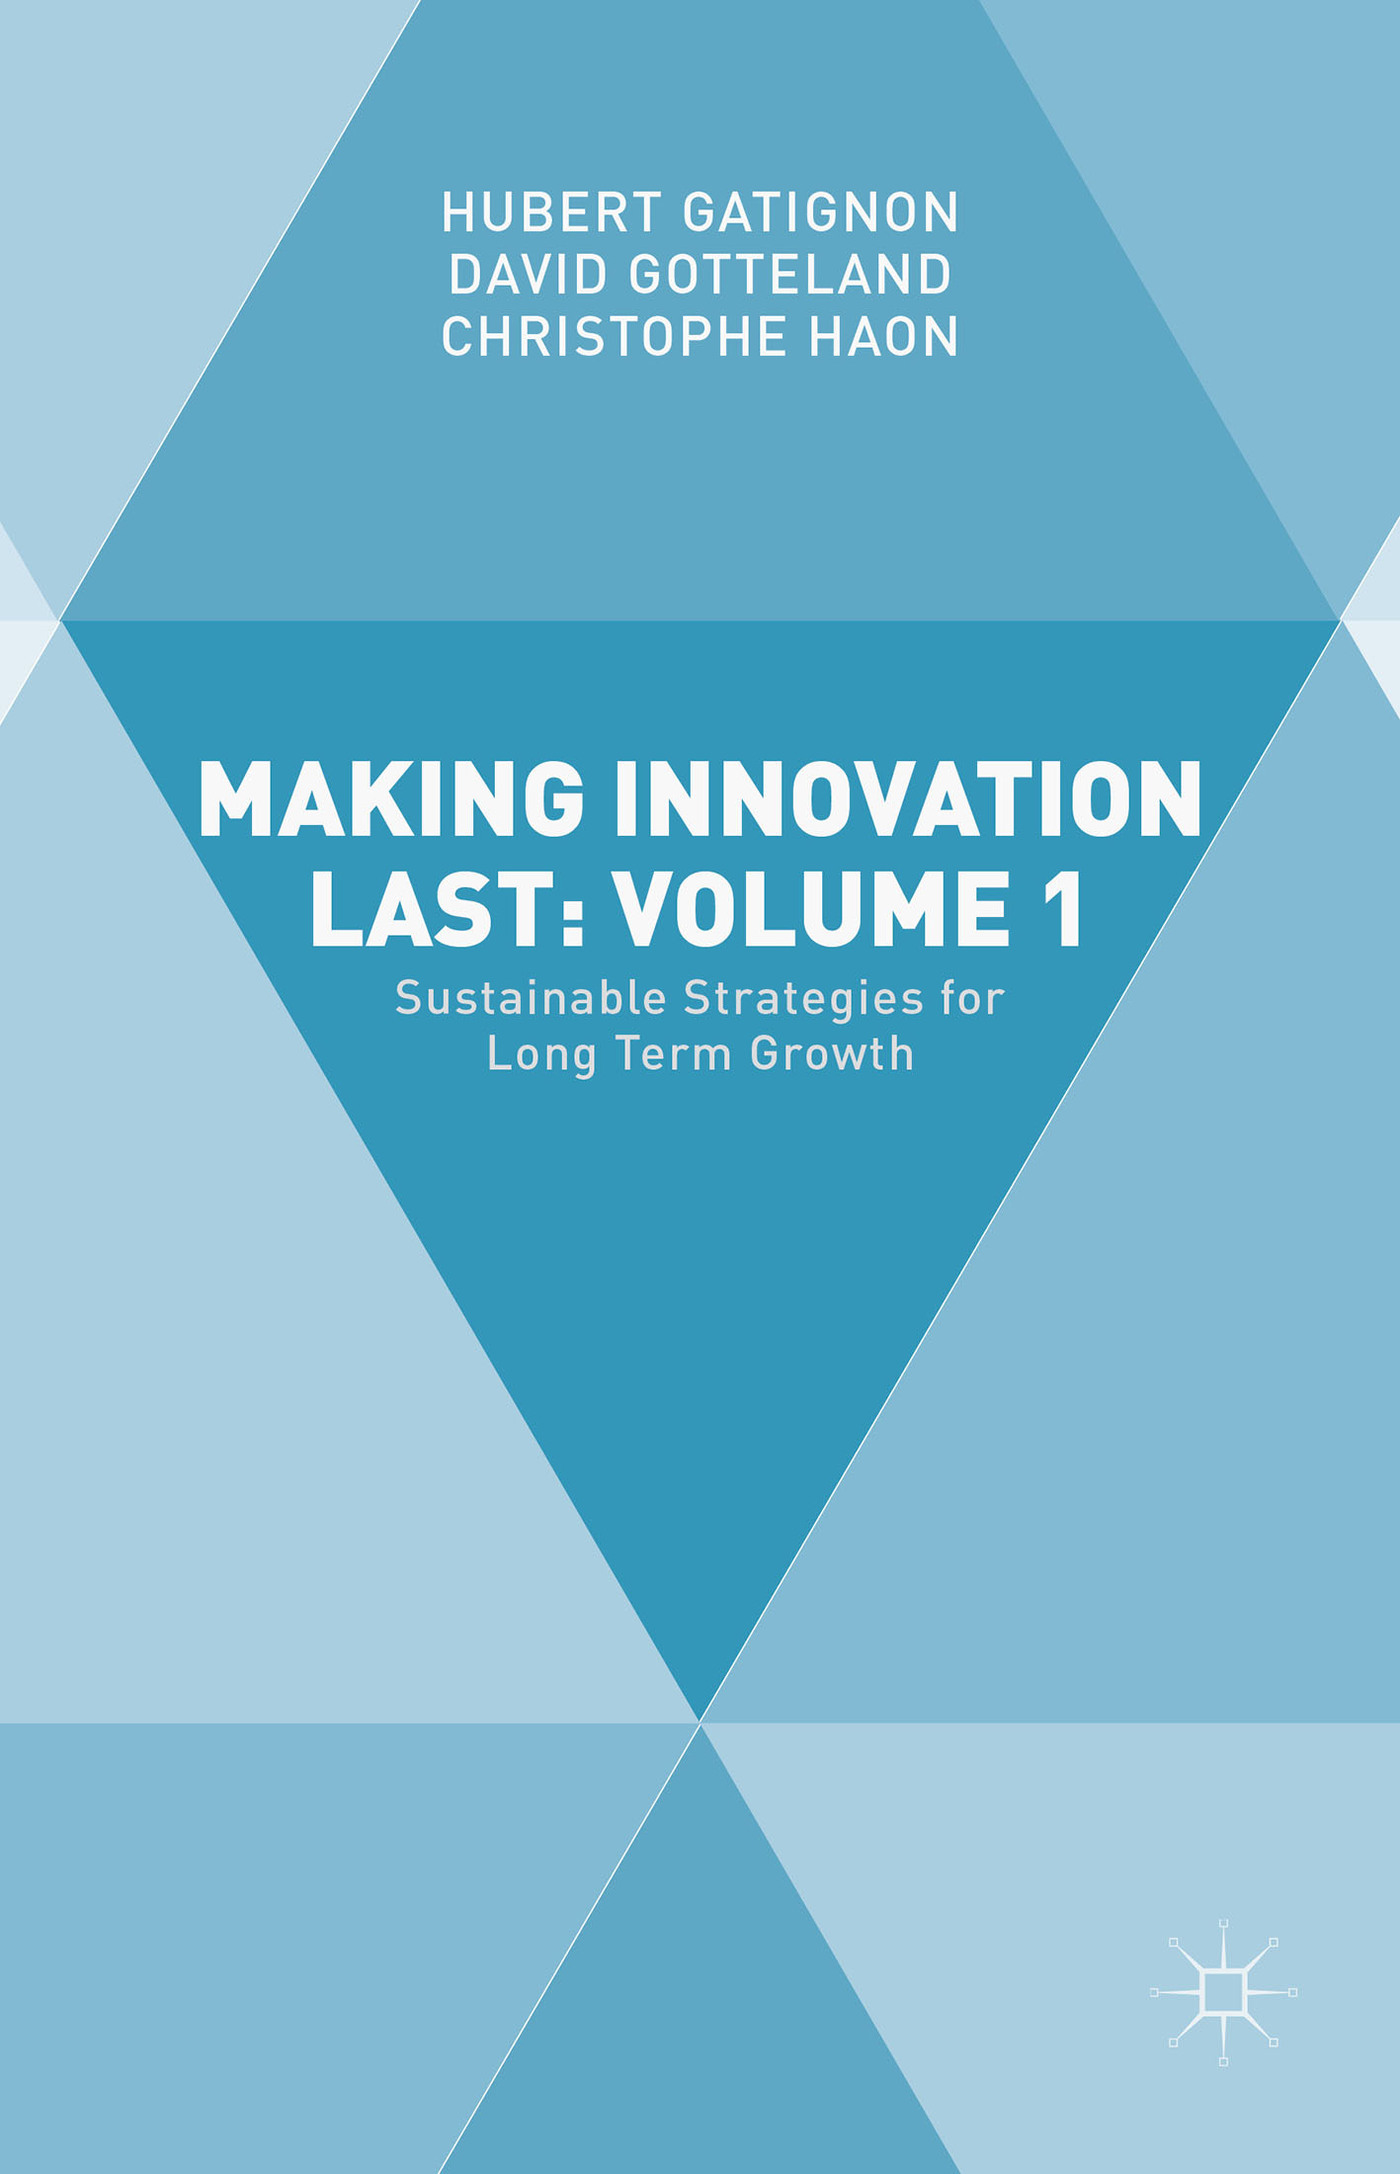 Making Innovation Last: Volume 1: Sustainable Strategies for Long Term Growth  by  Hubert Gatignon